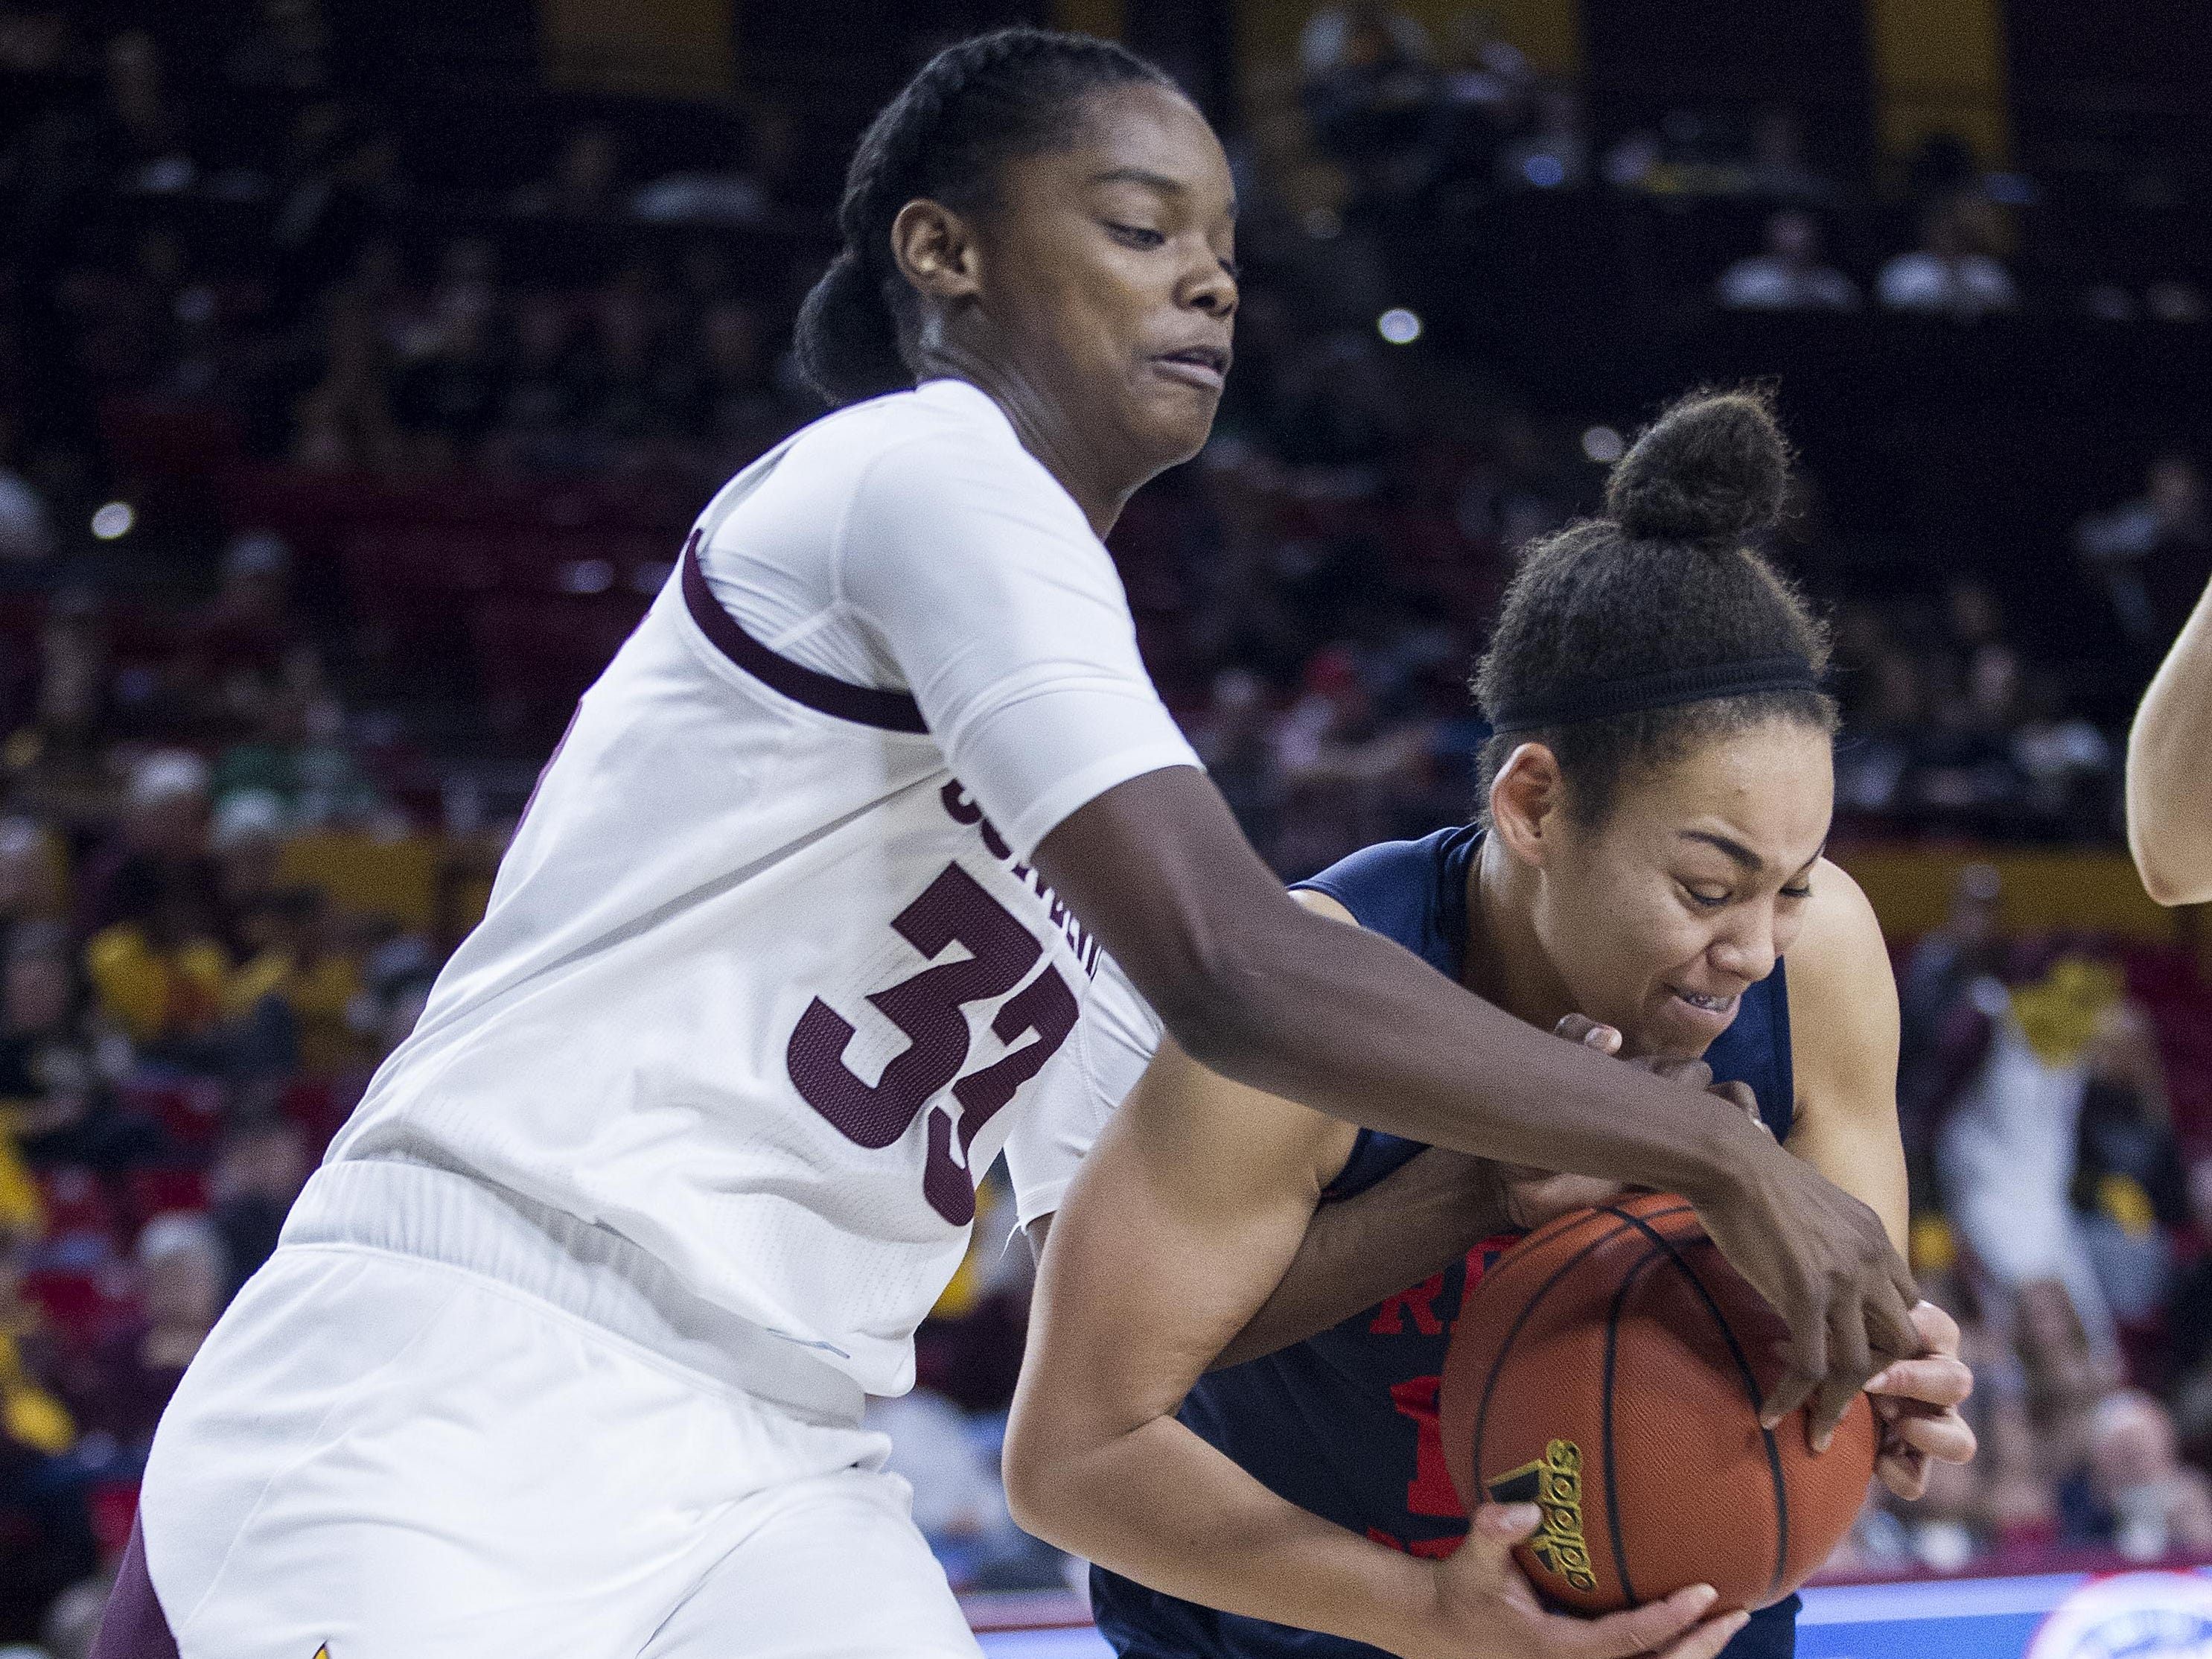 Arizona State's Charnea Johnson-Chapman (33) fights for a rebound with Fresno State's Candice White (10) in the second half of their game in Tempe, Thursday, Dec. 20, 2018.